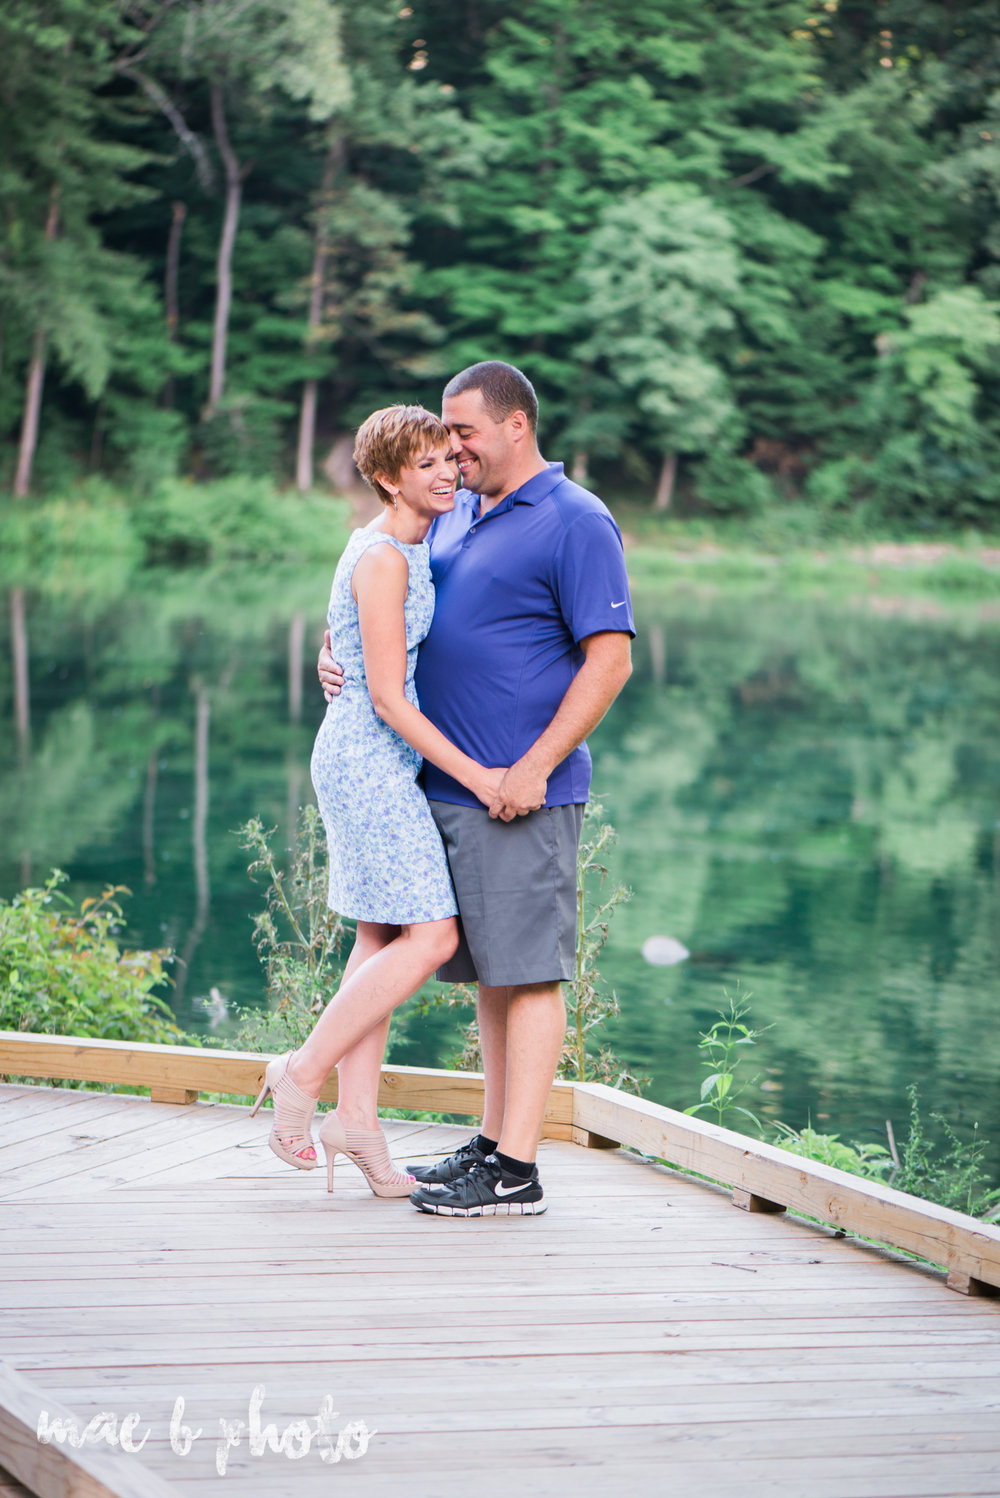 mary catherine and chads summer engagement session at the lilly pond in mill creek park in youngstown ohio photographed by cleveland wedding photographer mae b photo-1.jpg